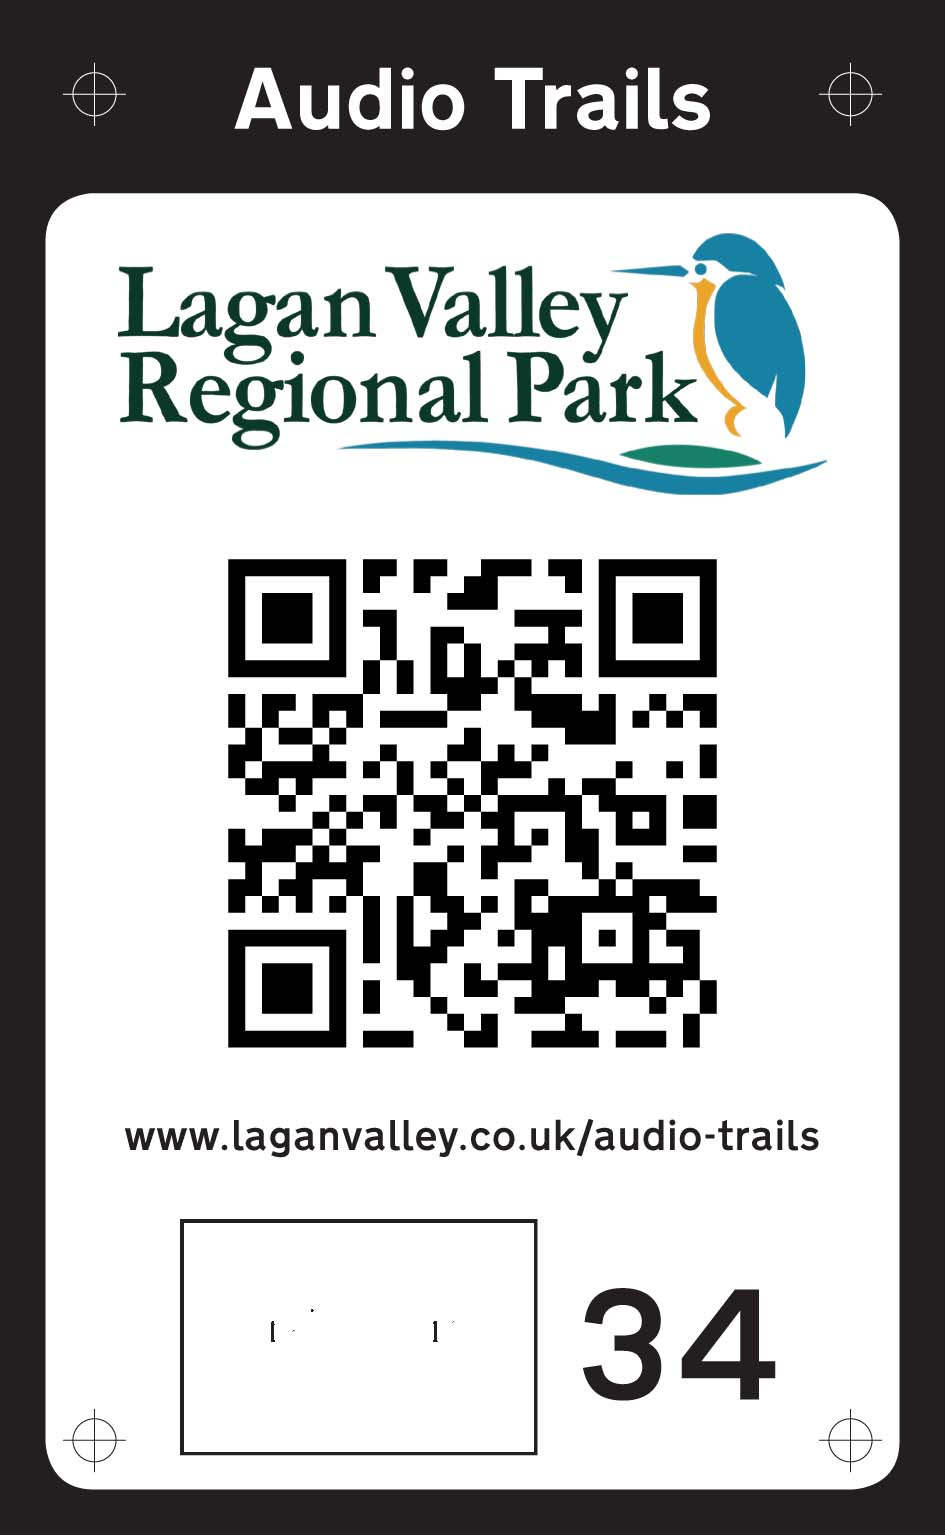 Heritage audio trail barcode